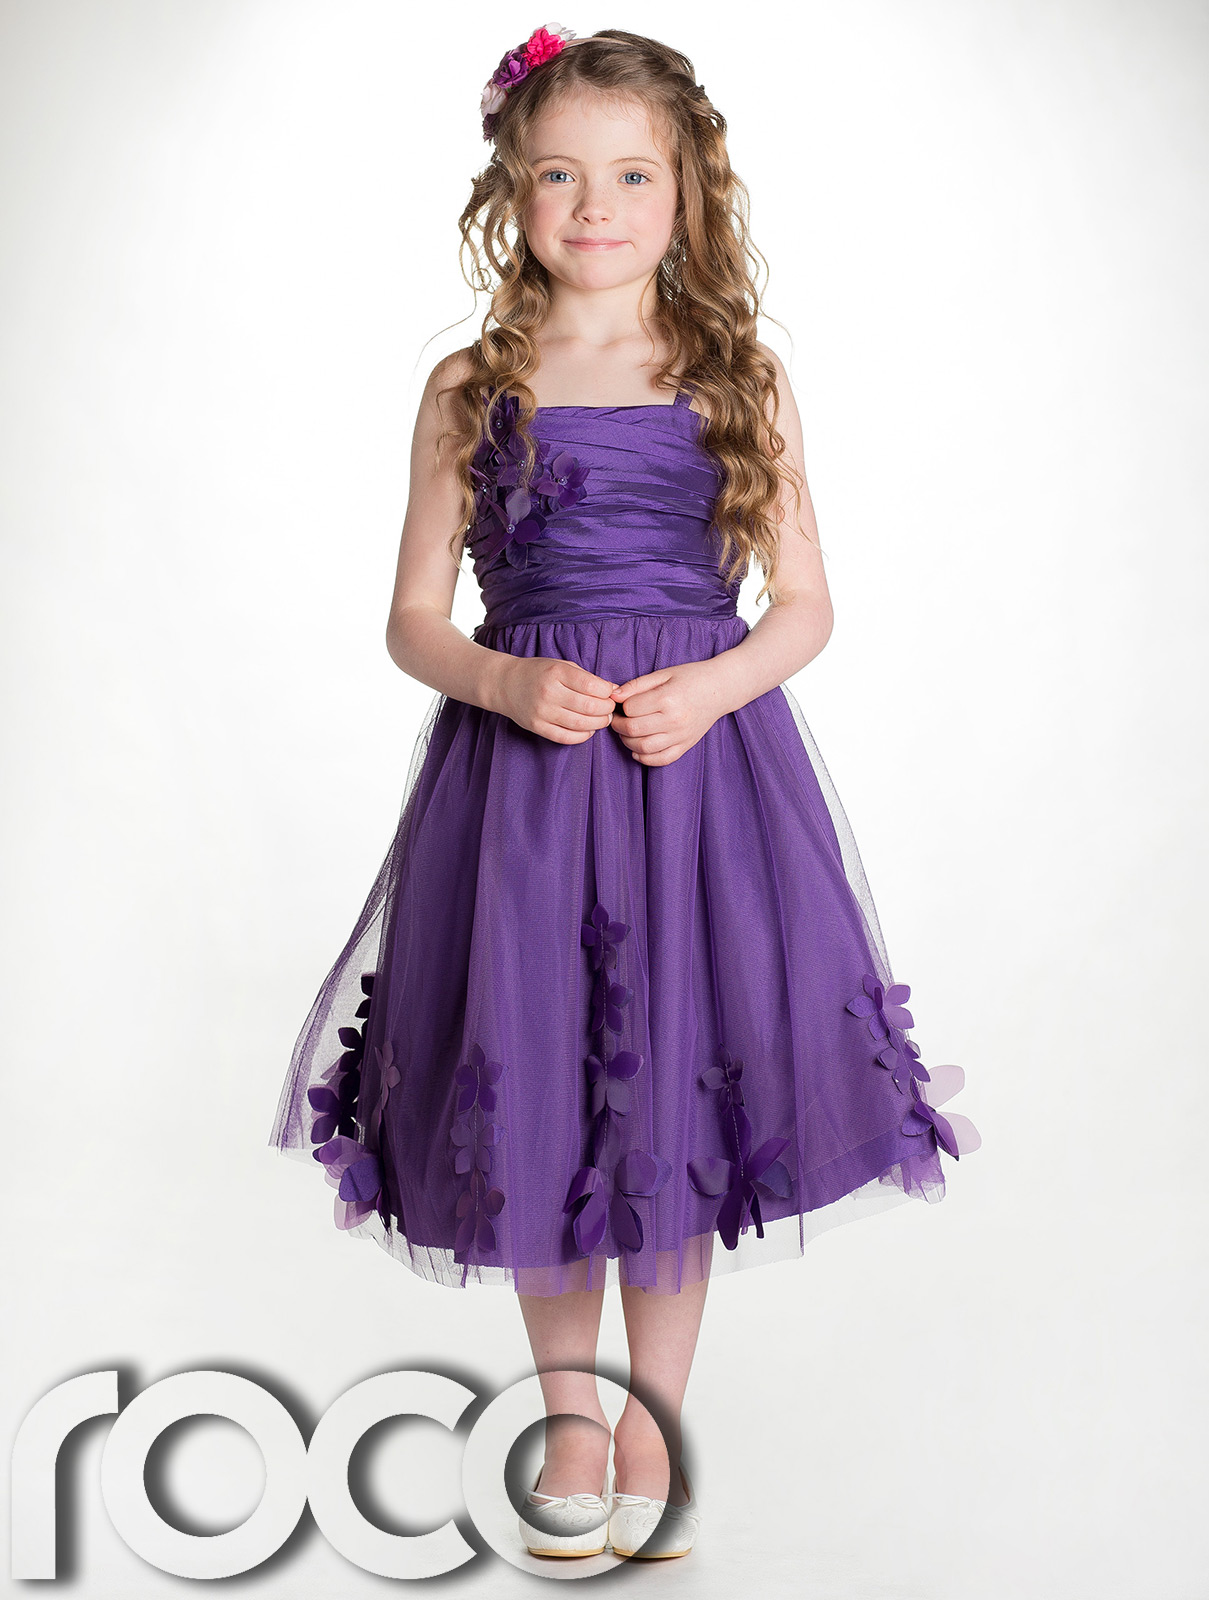 Popatu soft cotton ruffle dresses, tulle dresses and soft cotton tutu bodysuits. Plush animal rolling backpacks, trendy fashion purses and accessories.